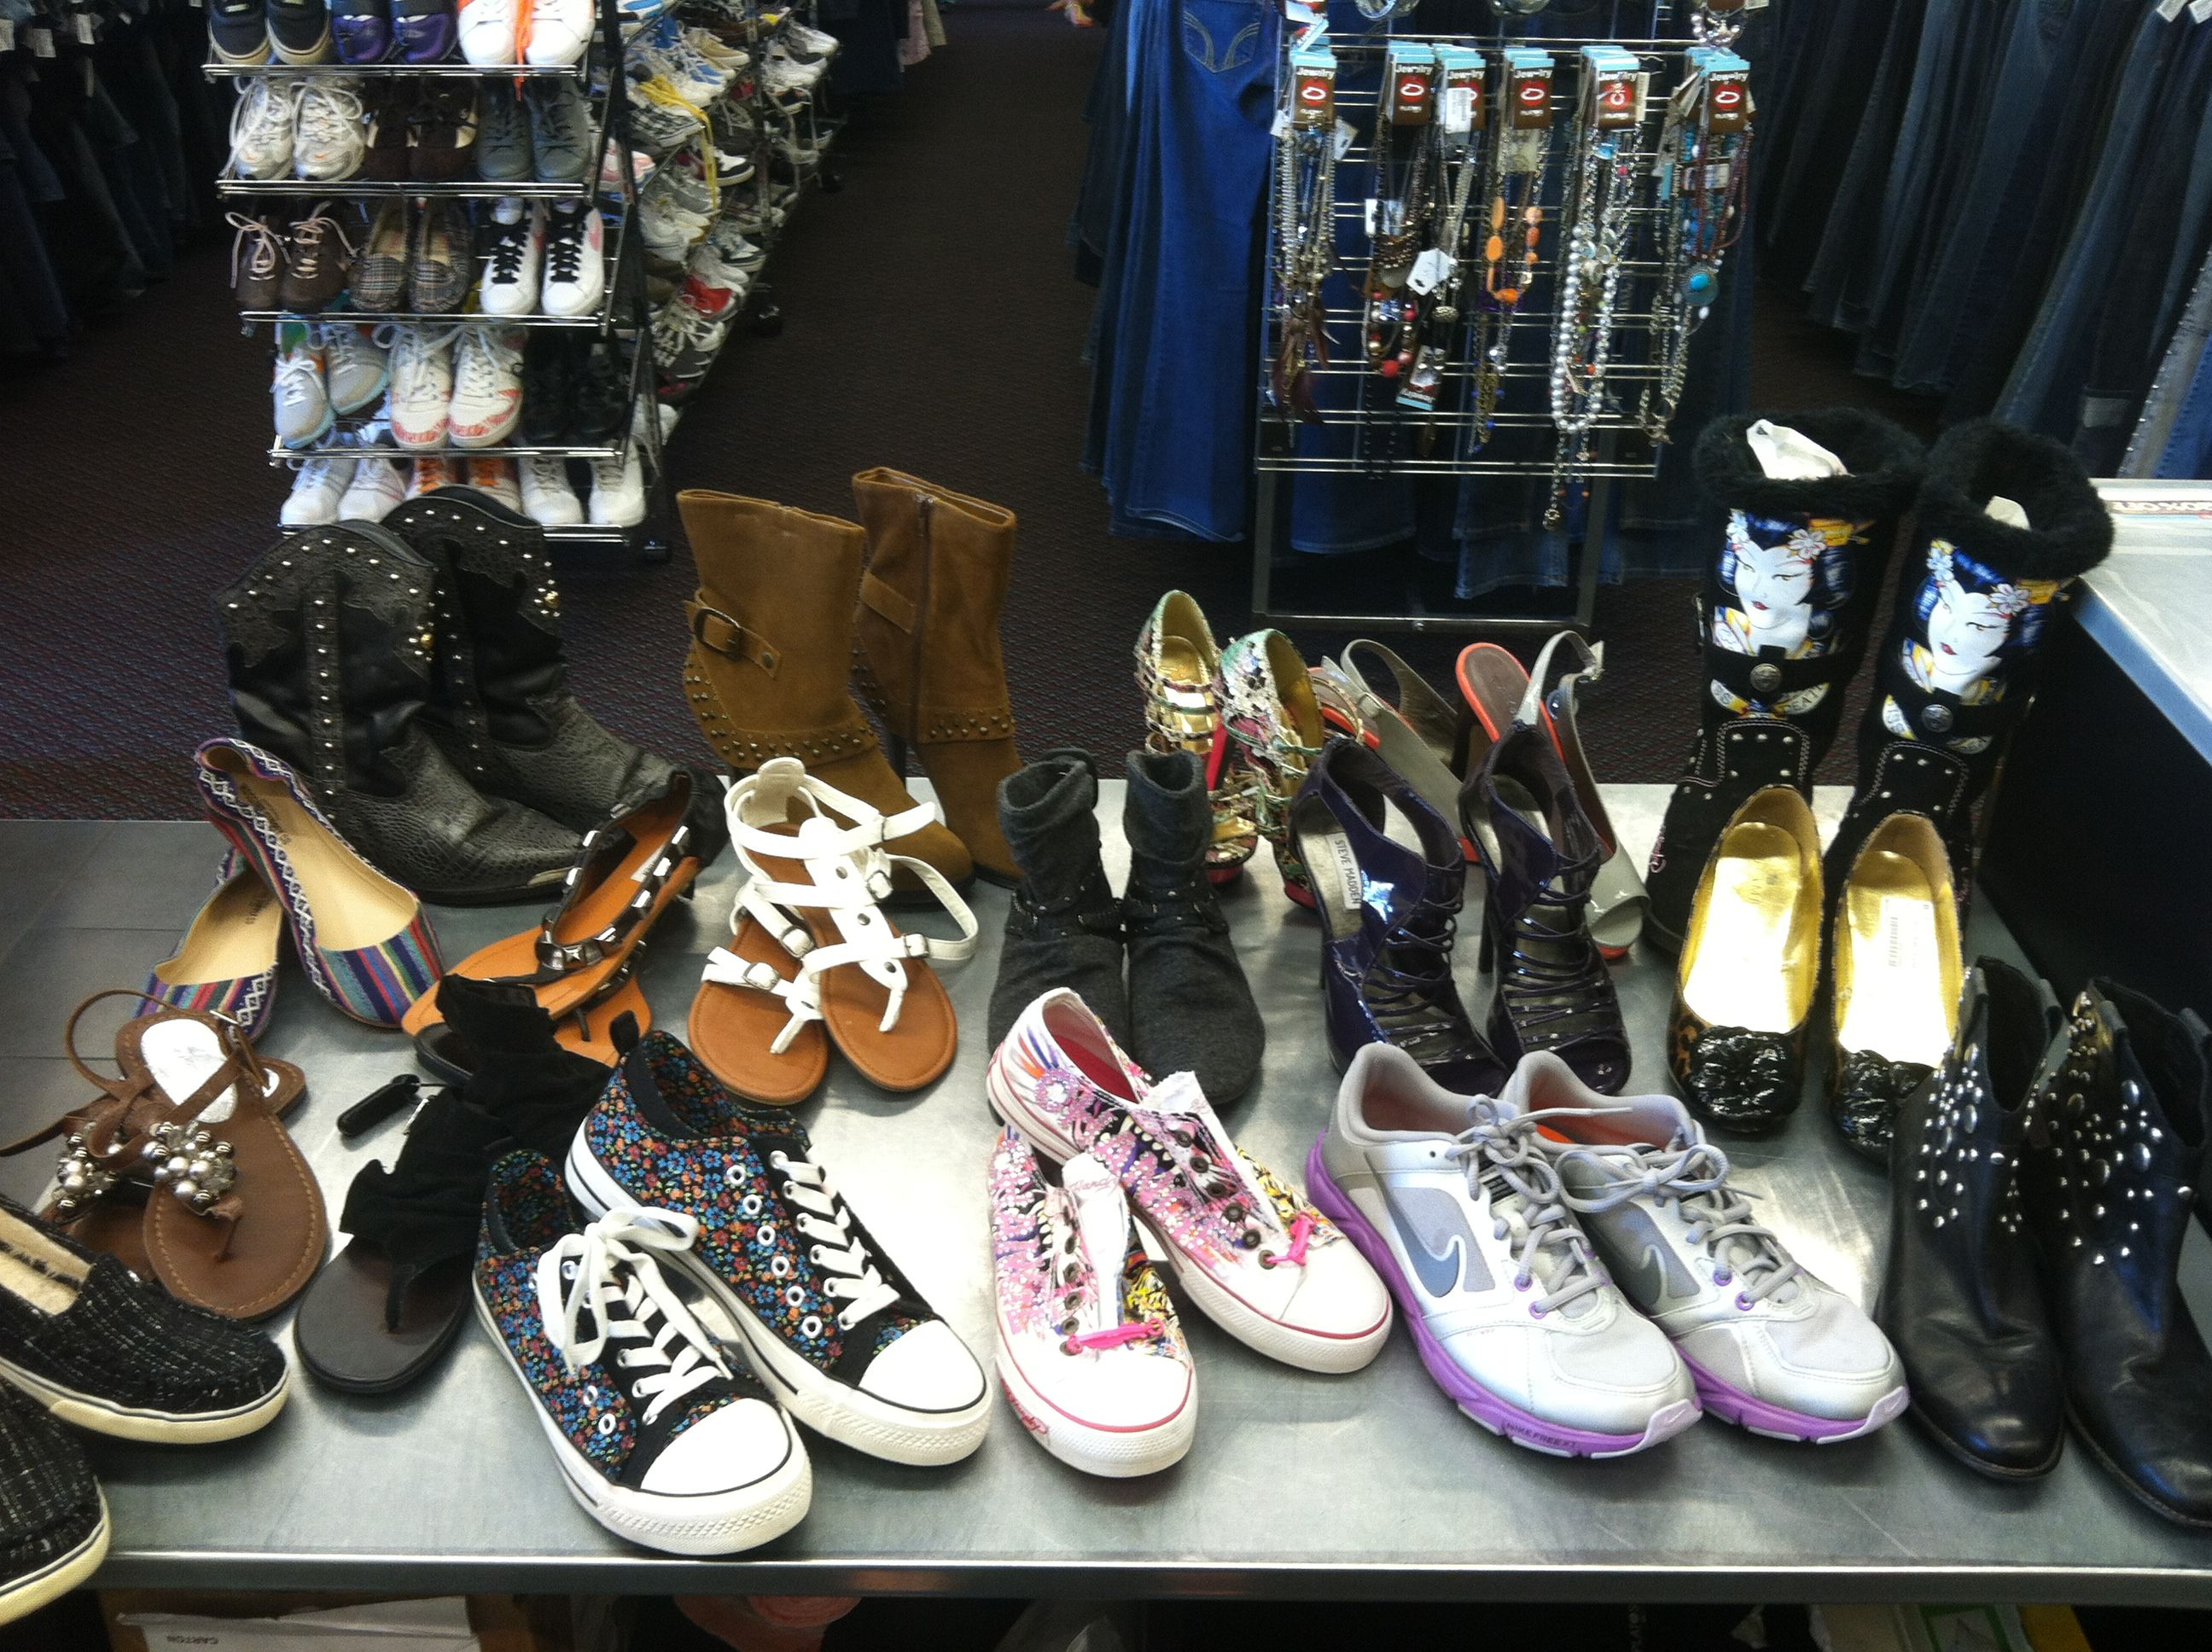 Plato S Closet Has All The Shoes You Re Looking Forward Short Boots Tennis Shoes Sandals And More Short Boots Tennis Shoes Shoes